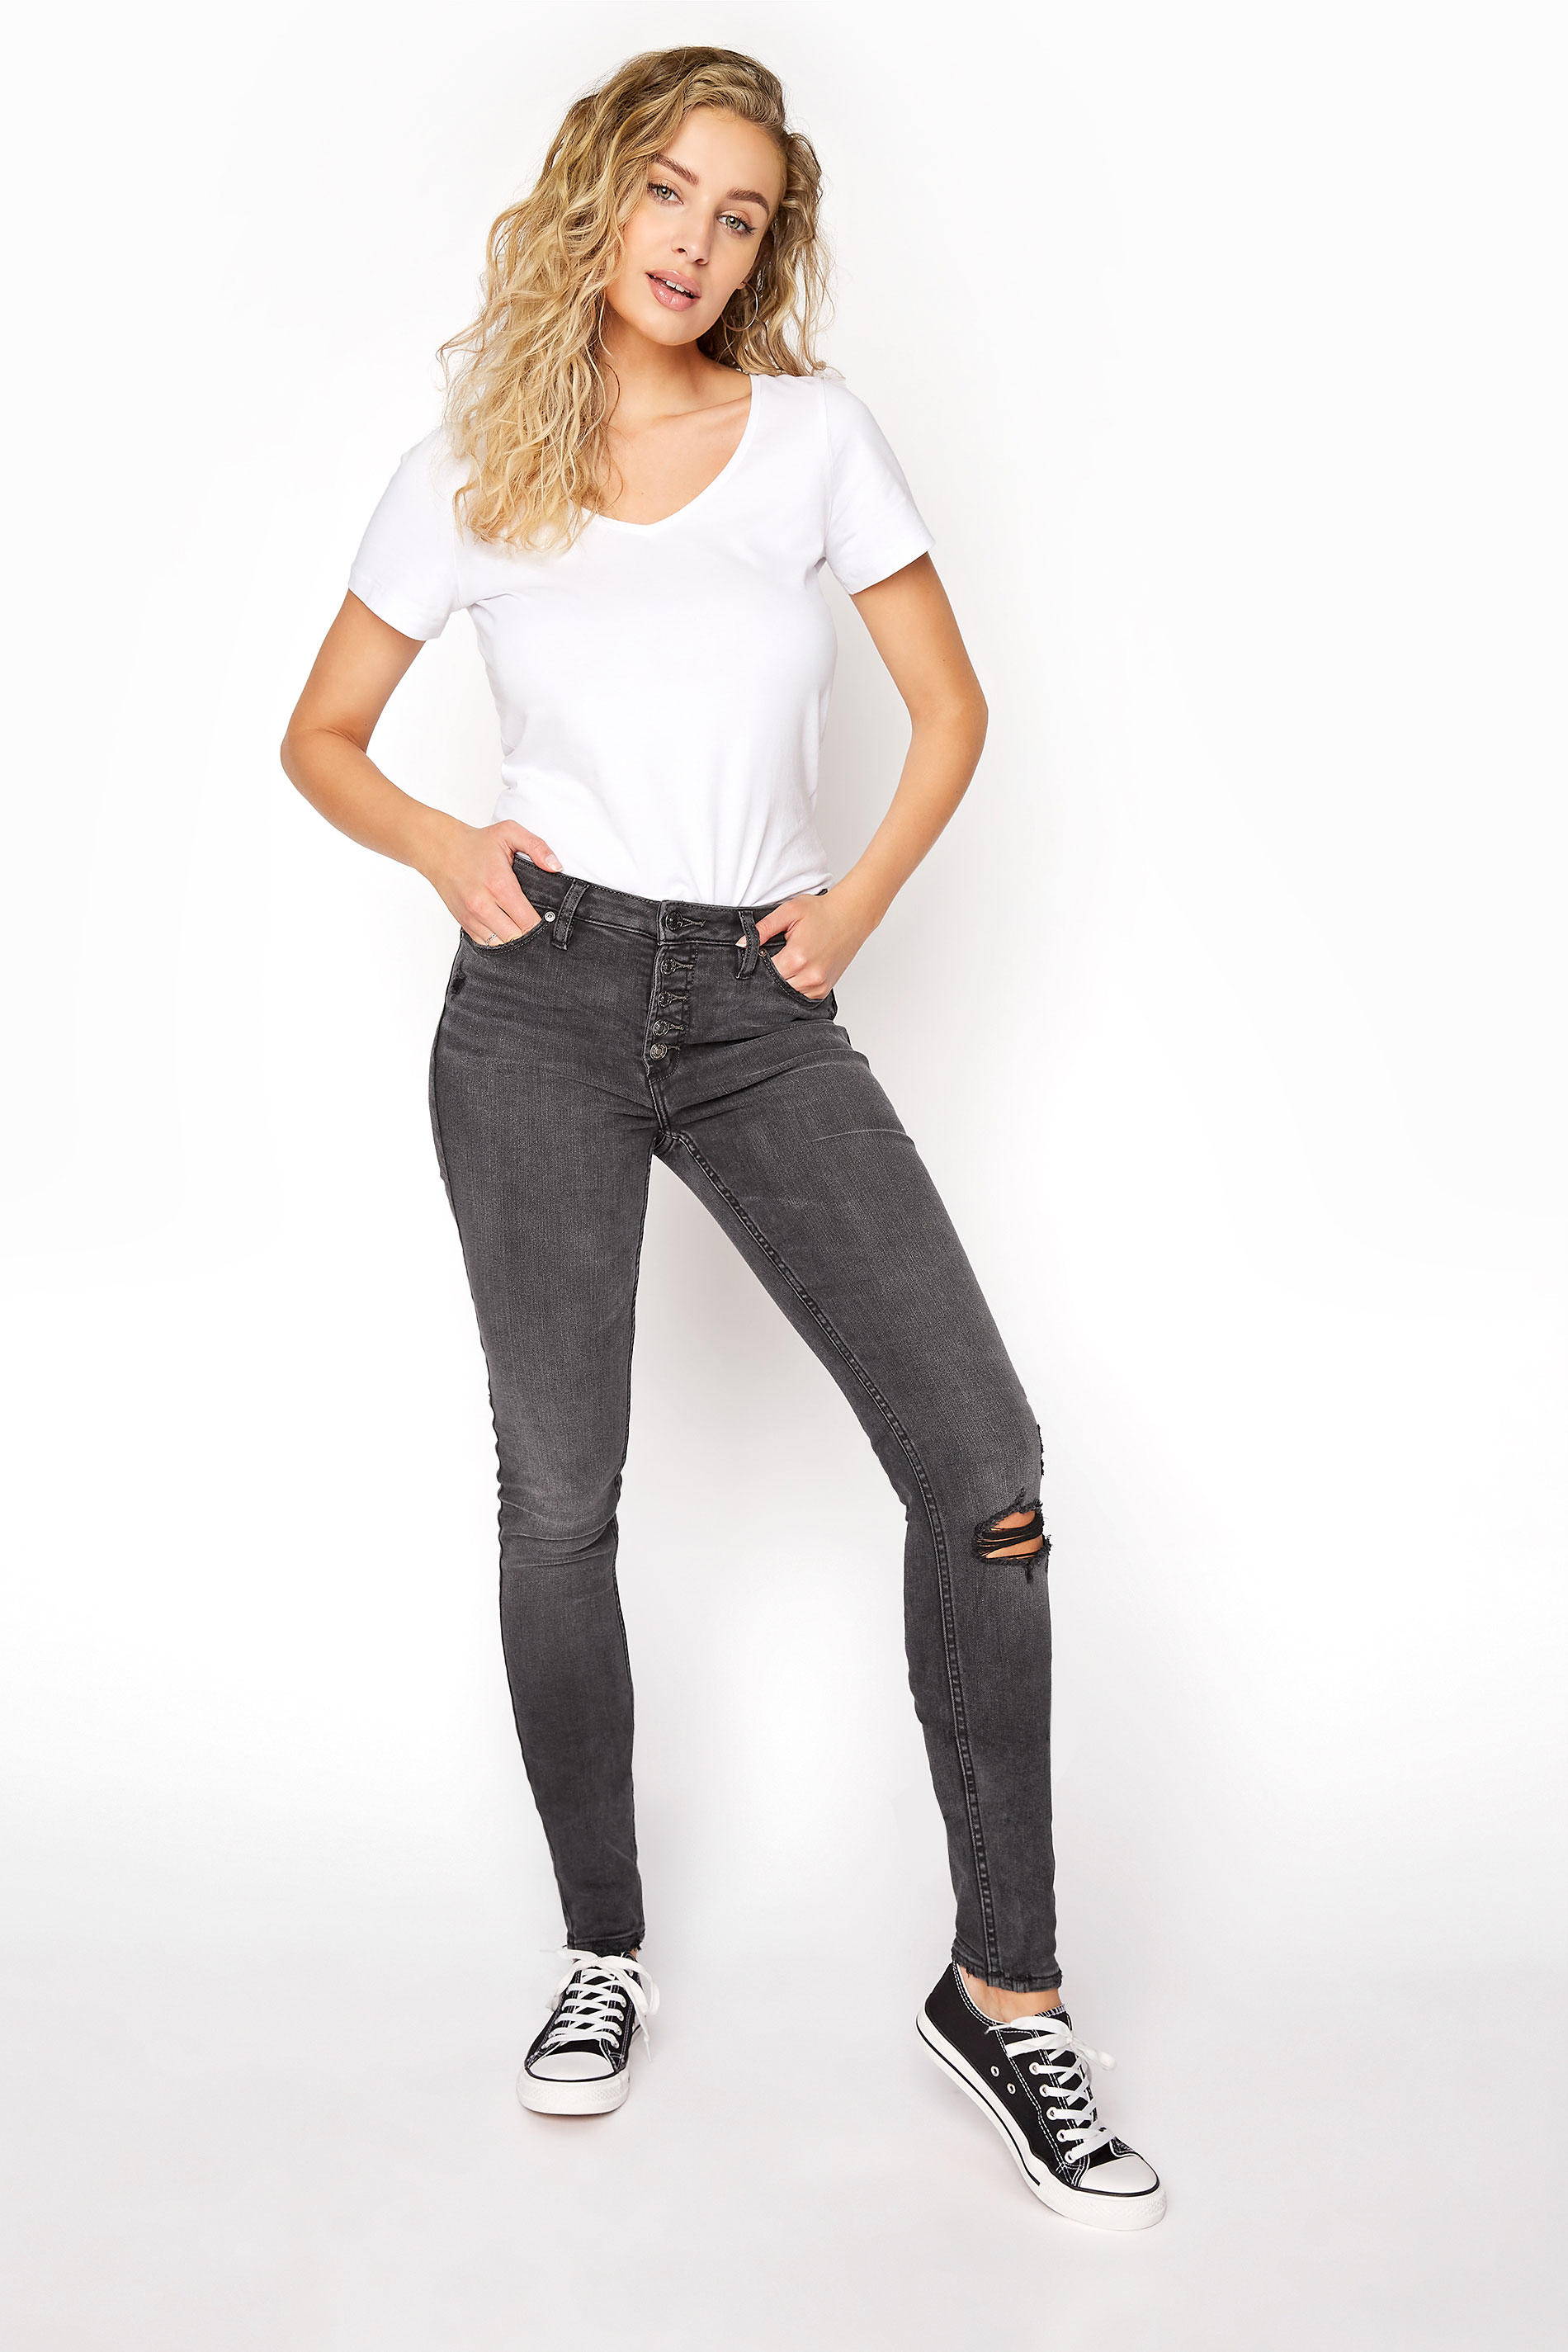 SILVER JEANS Washed Black Robson Skinny Jeans